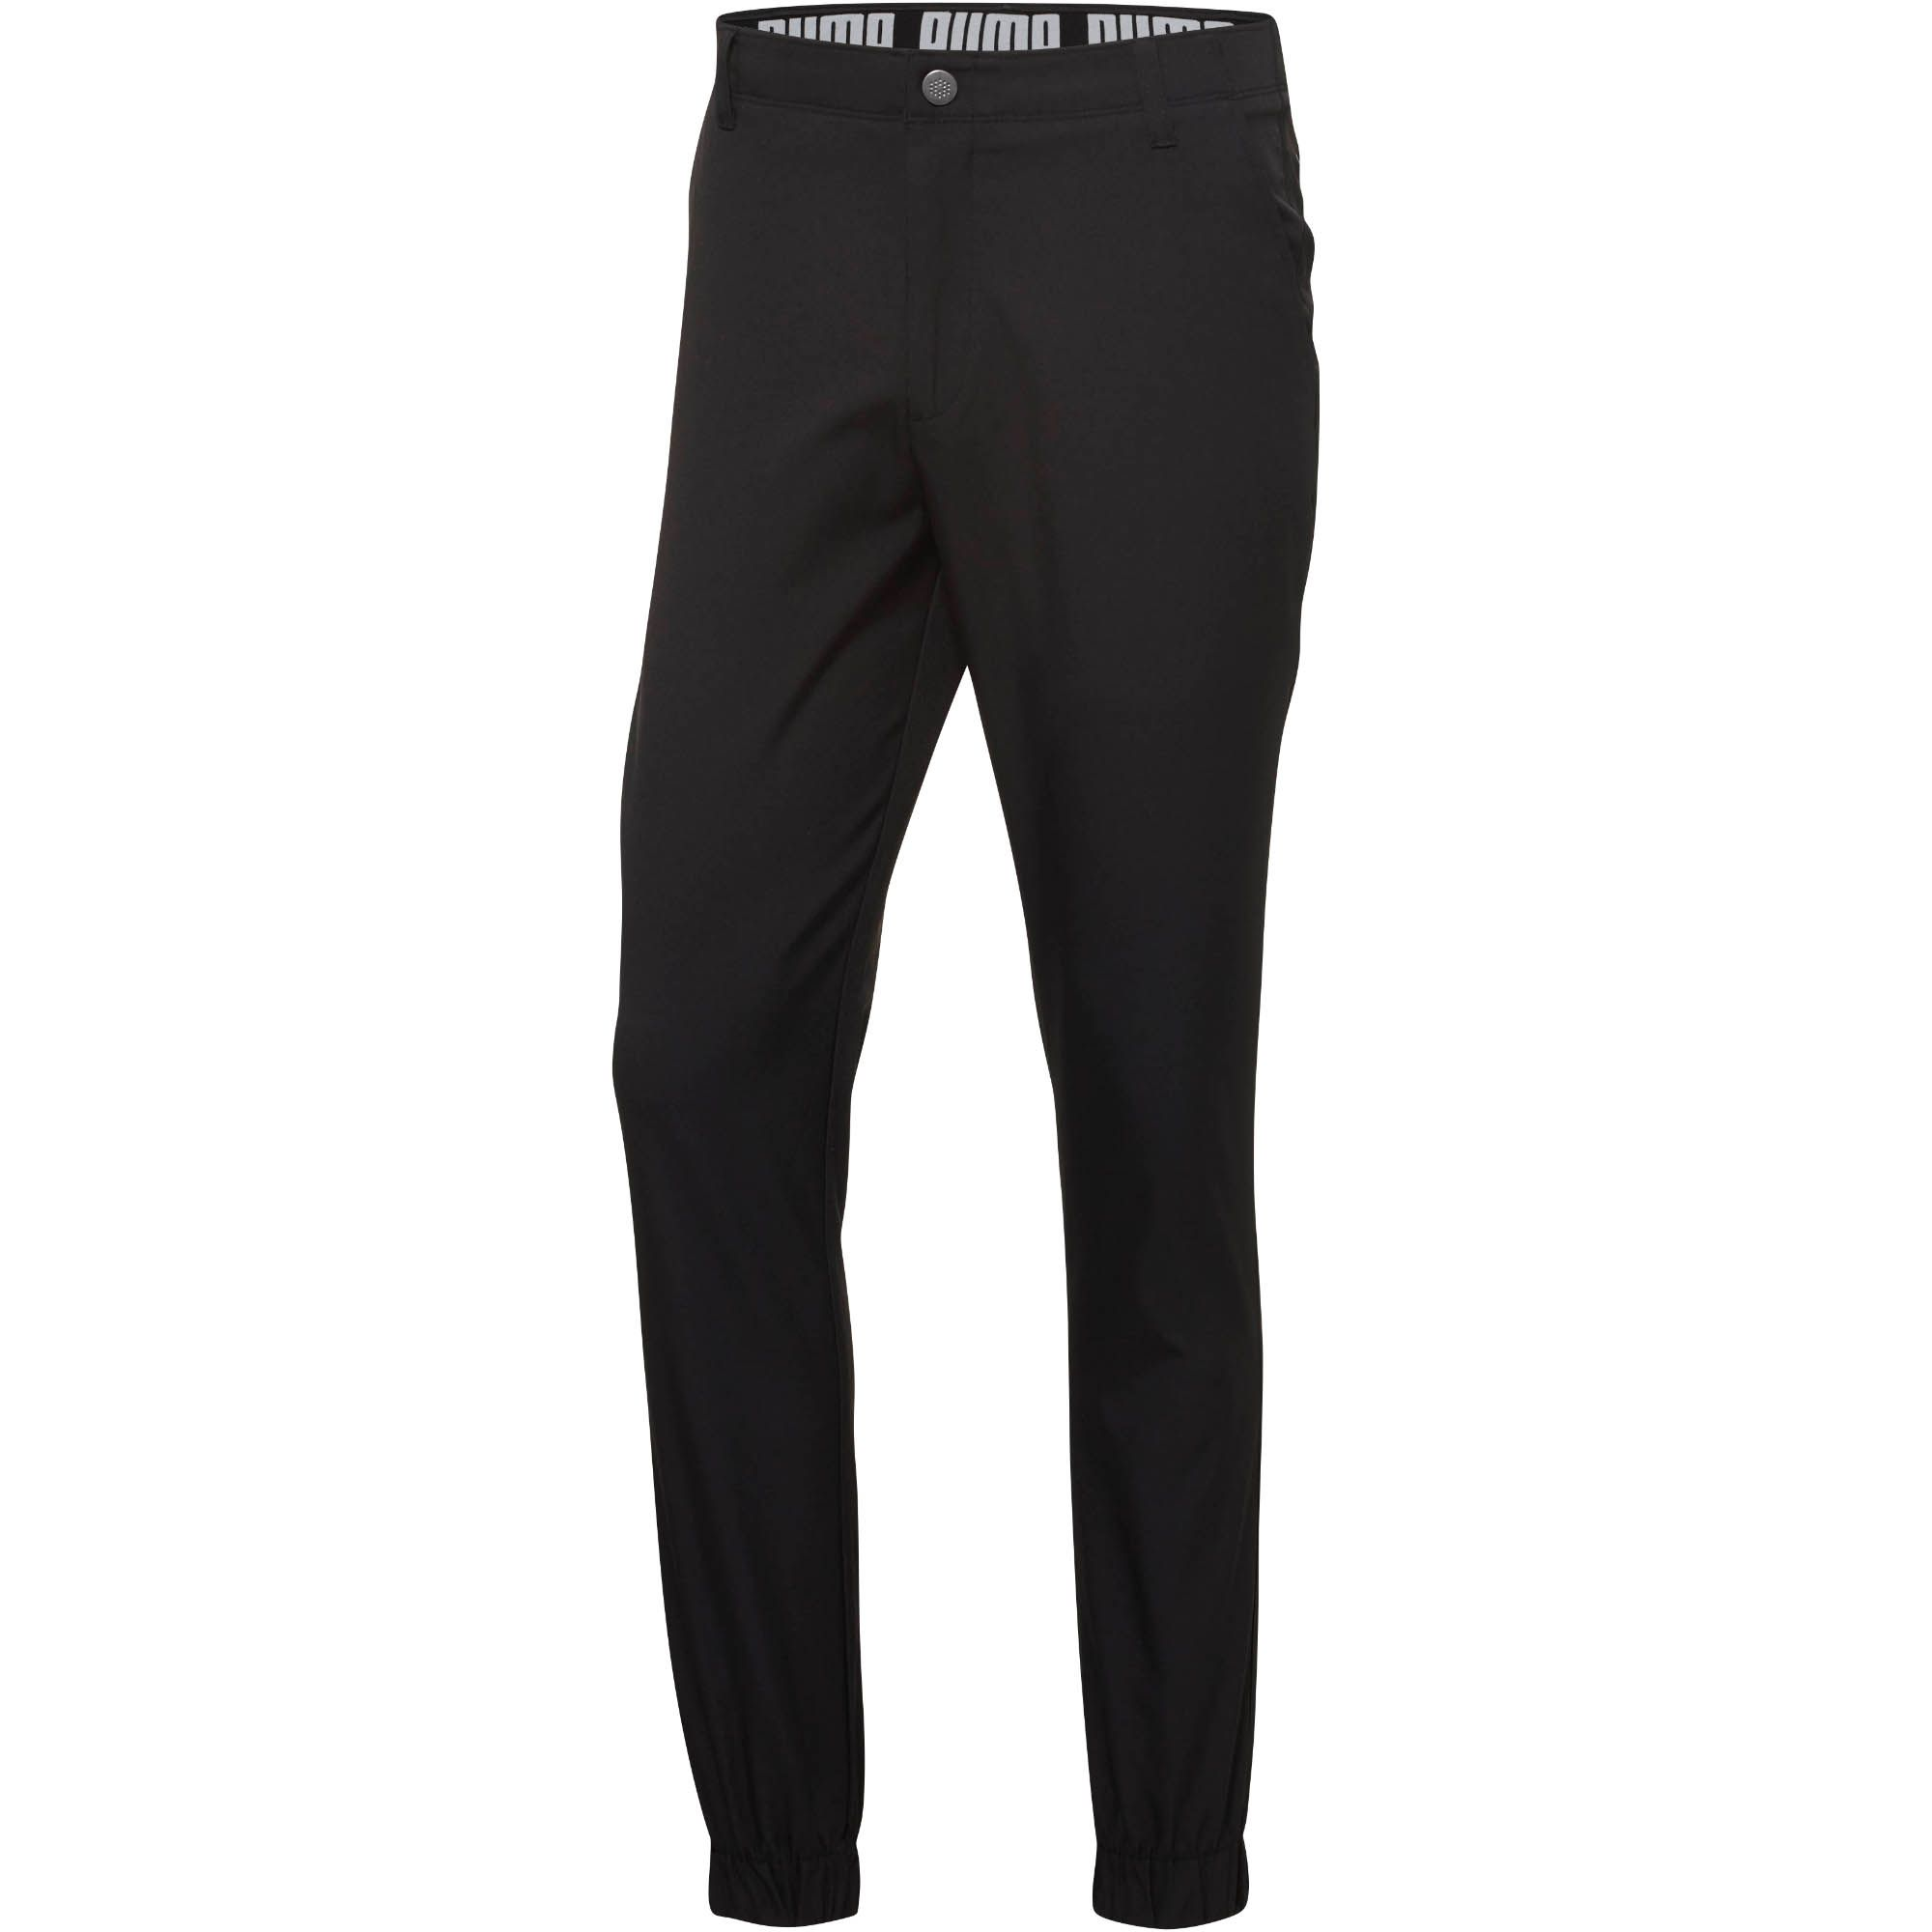 Gray Dress Pant Sweatpants